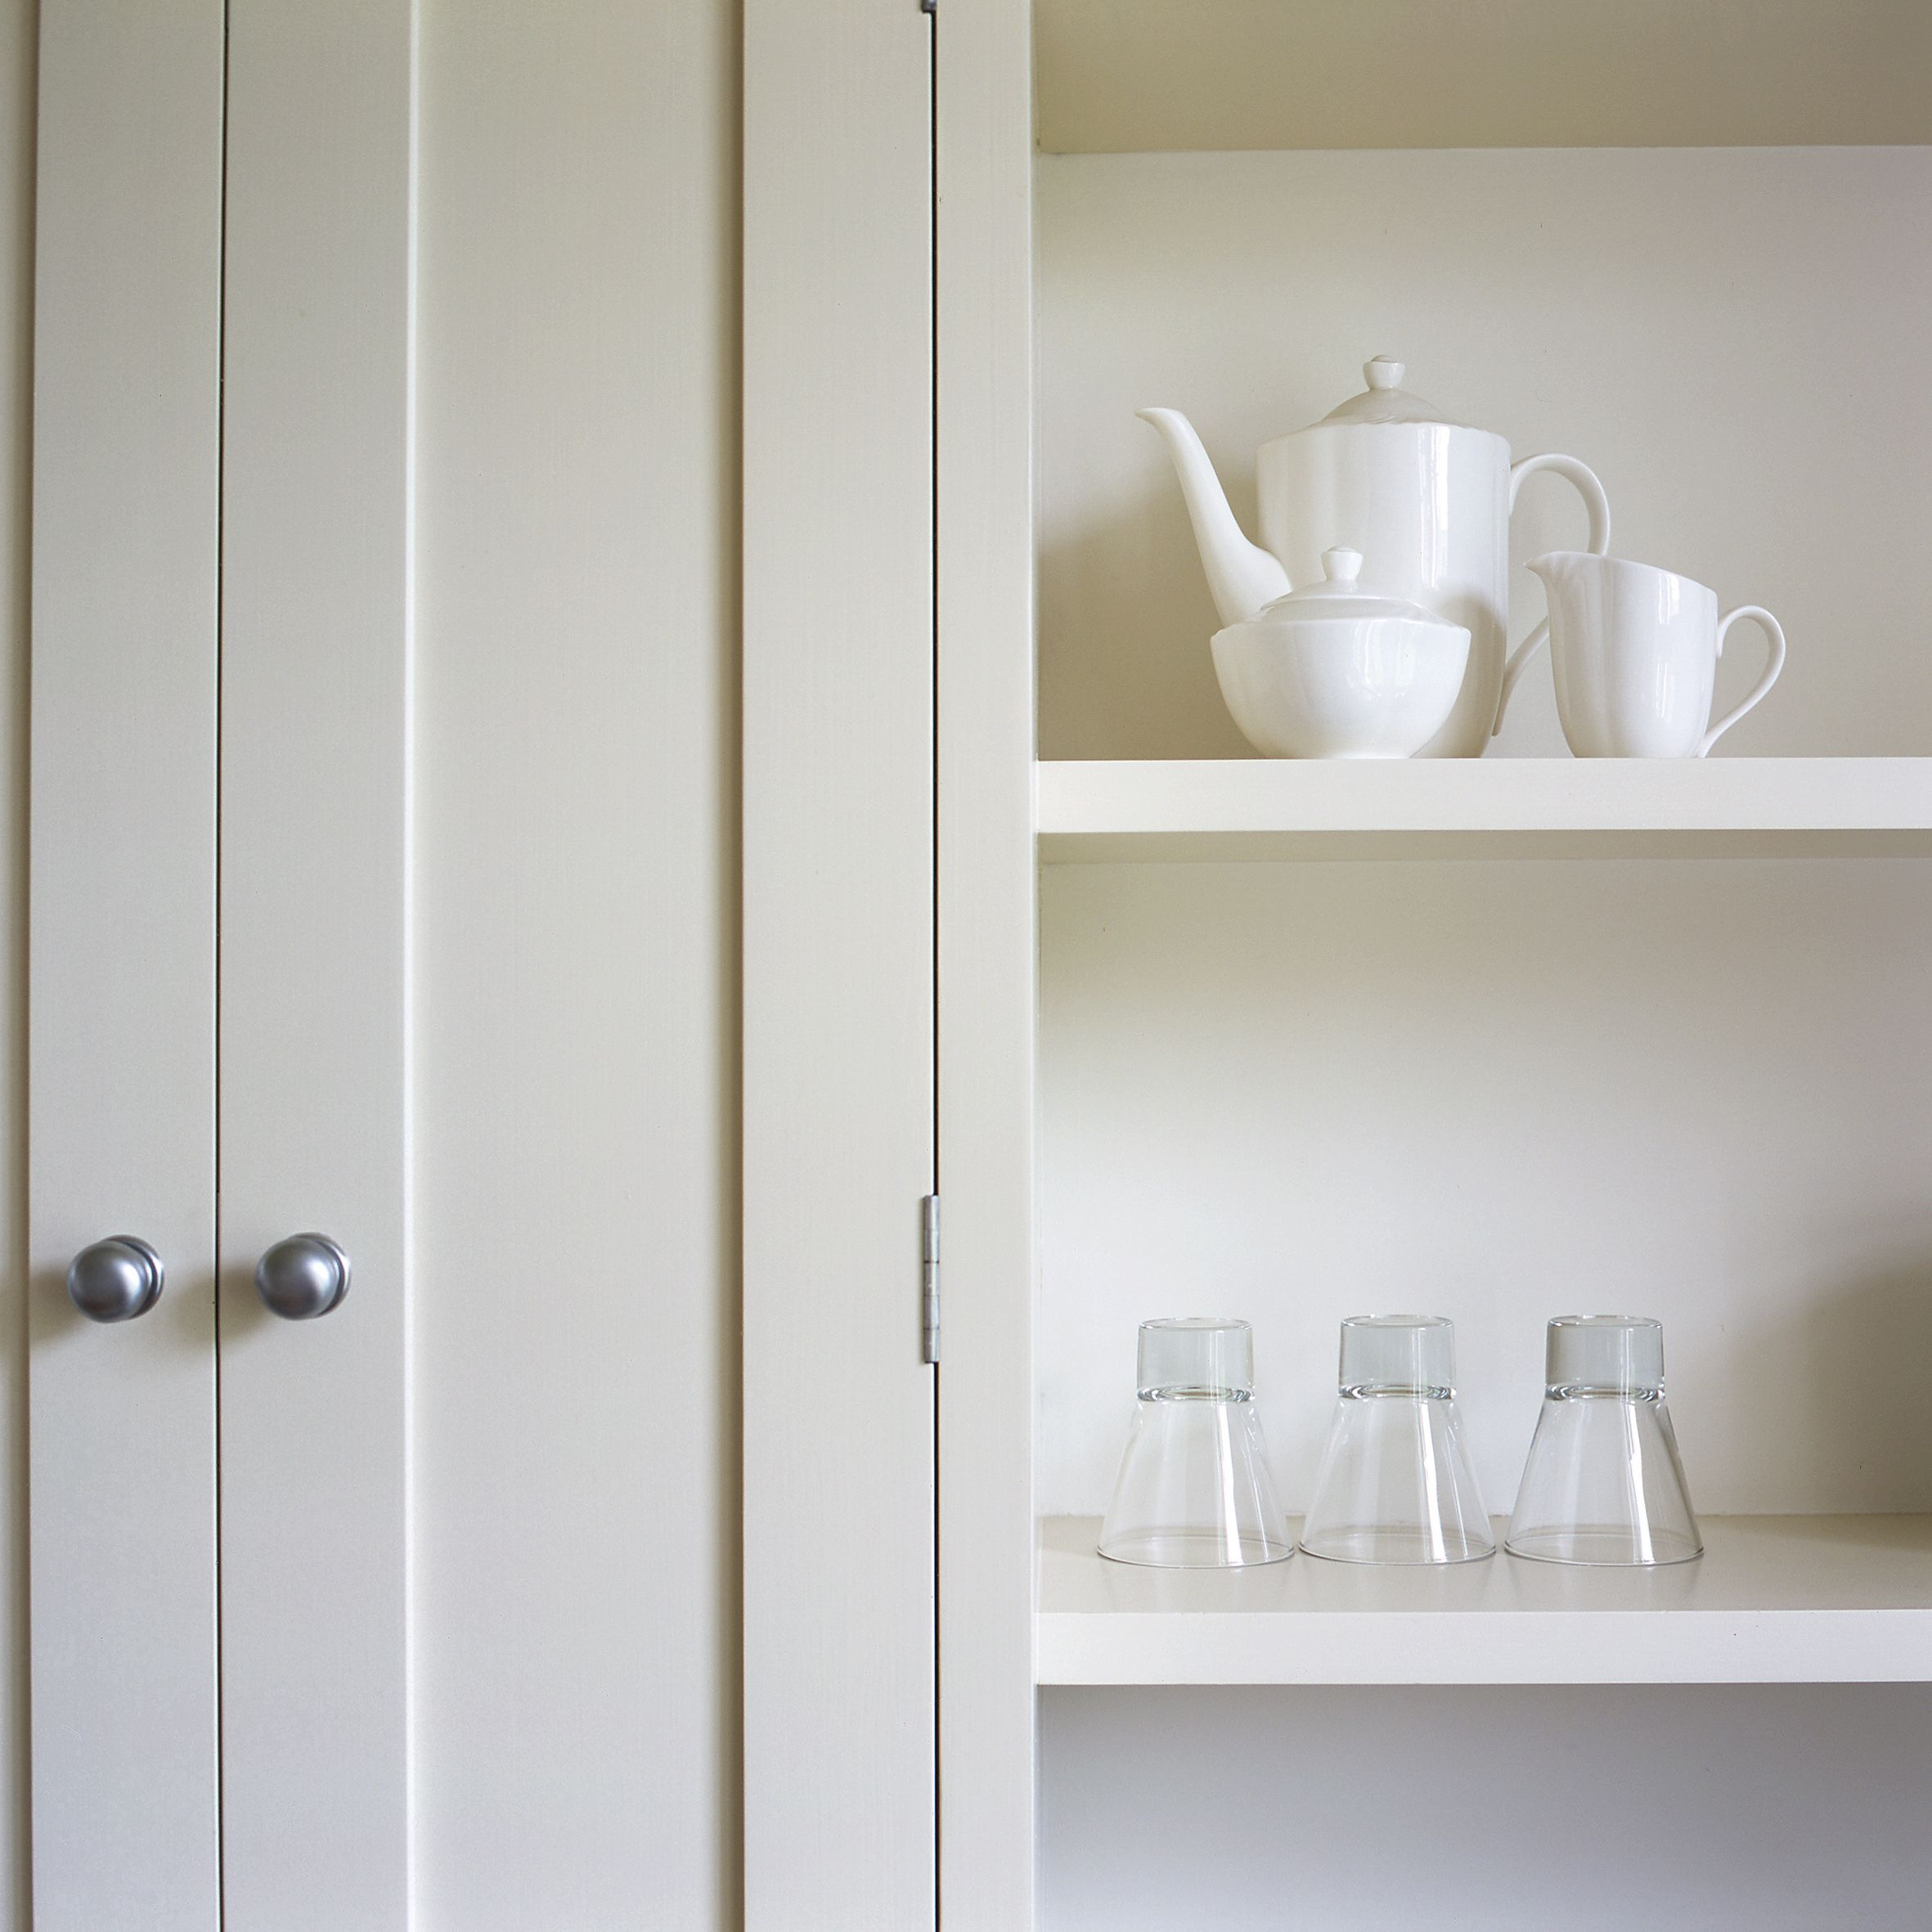 Farrow And Ball Kitchen Cabinets: Cupboard In Clunch Estate Eggshell